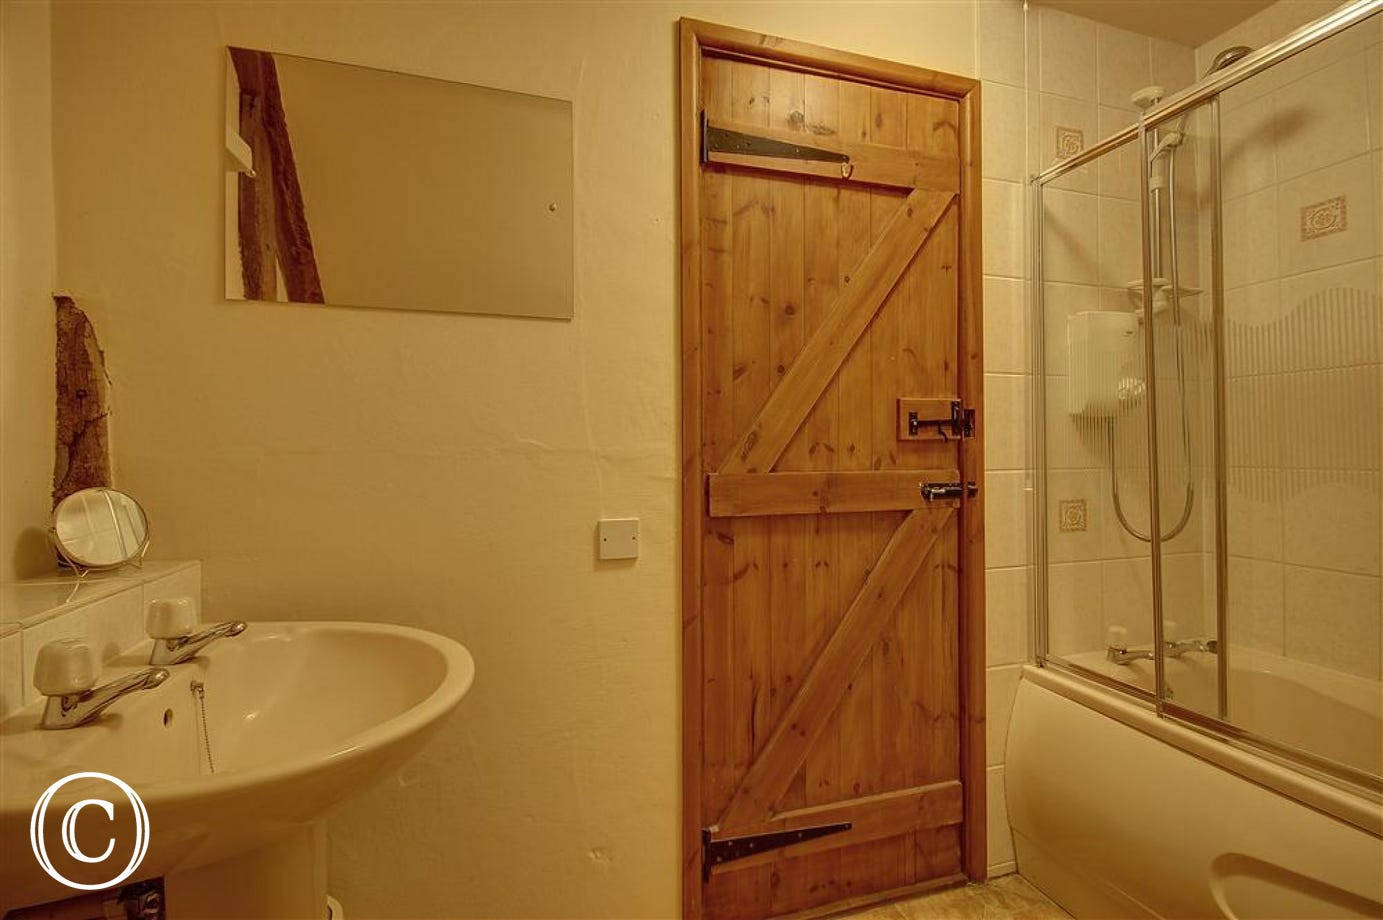 A perfectly sized bathroom with added overbath shower facility.